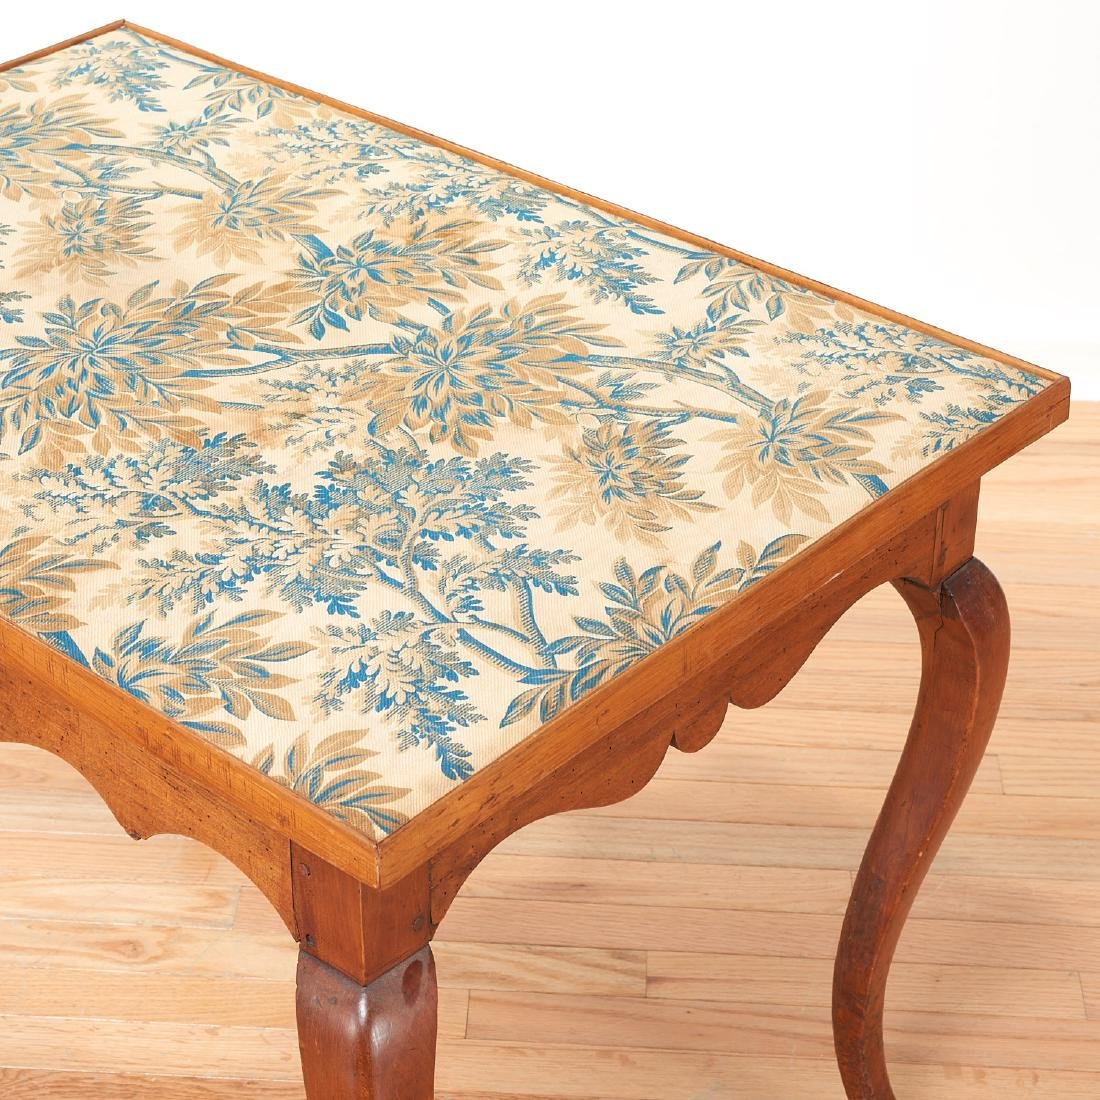 Antique French Provincial card table - 3